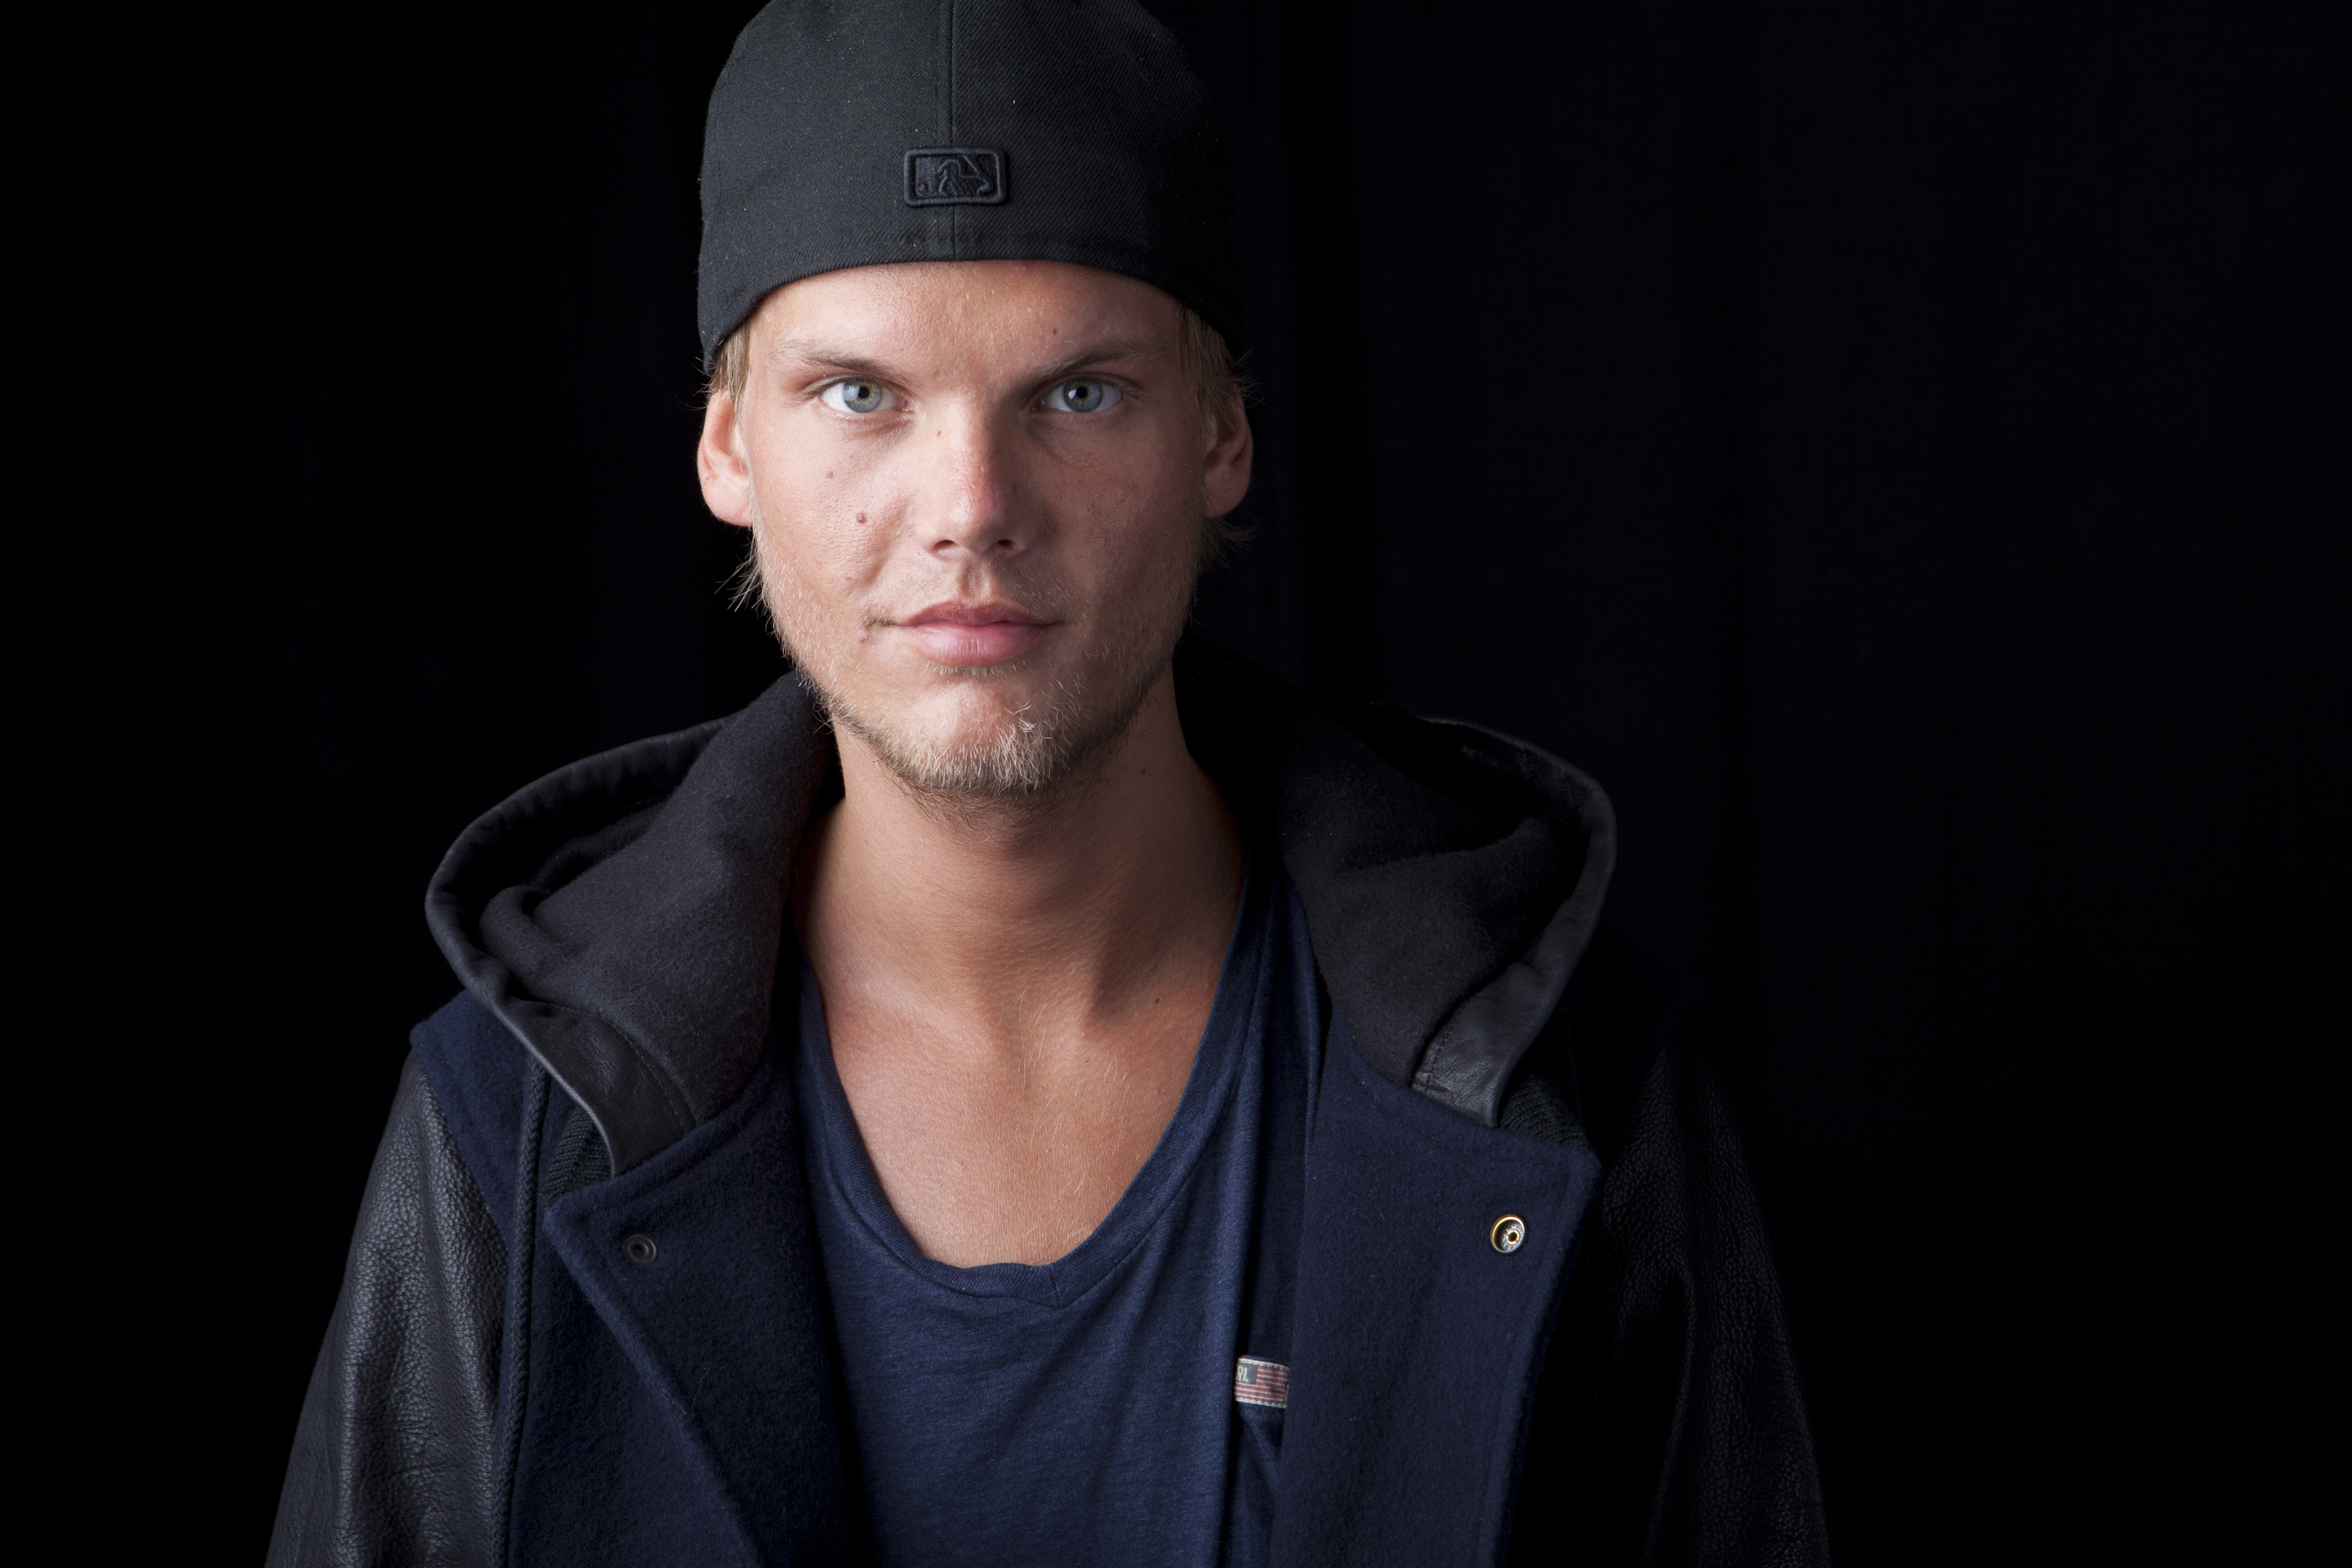 FILE - In this Aug. 30, 2013 file photo, Swedish DJ, remixer and record producer Avicii poses for a portrait, in New York. (Photo by Amy Sussman/Invision/AP, File)